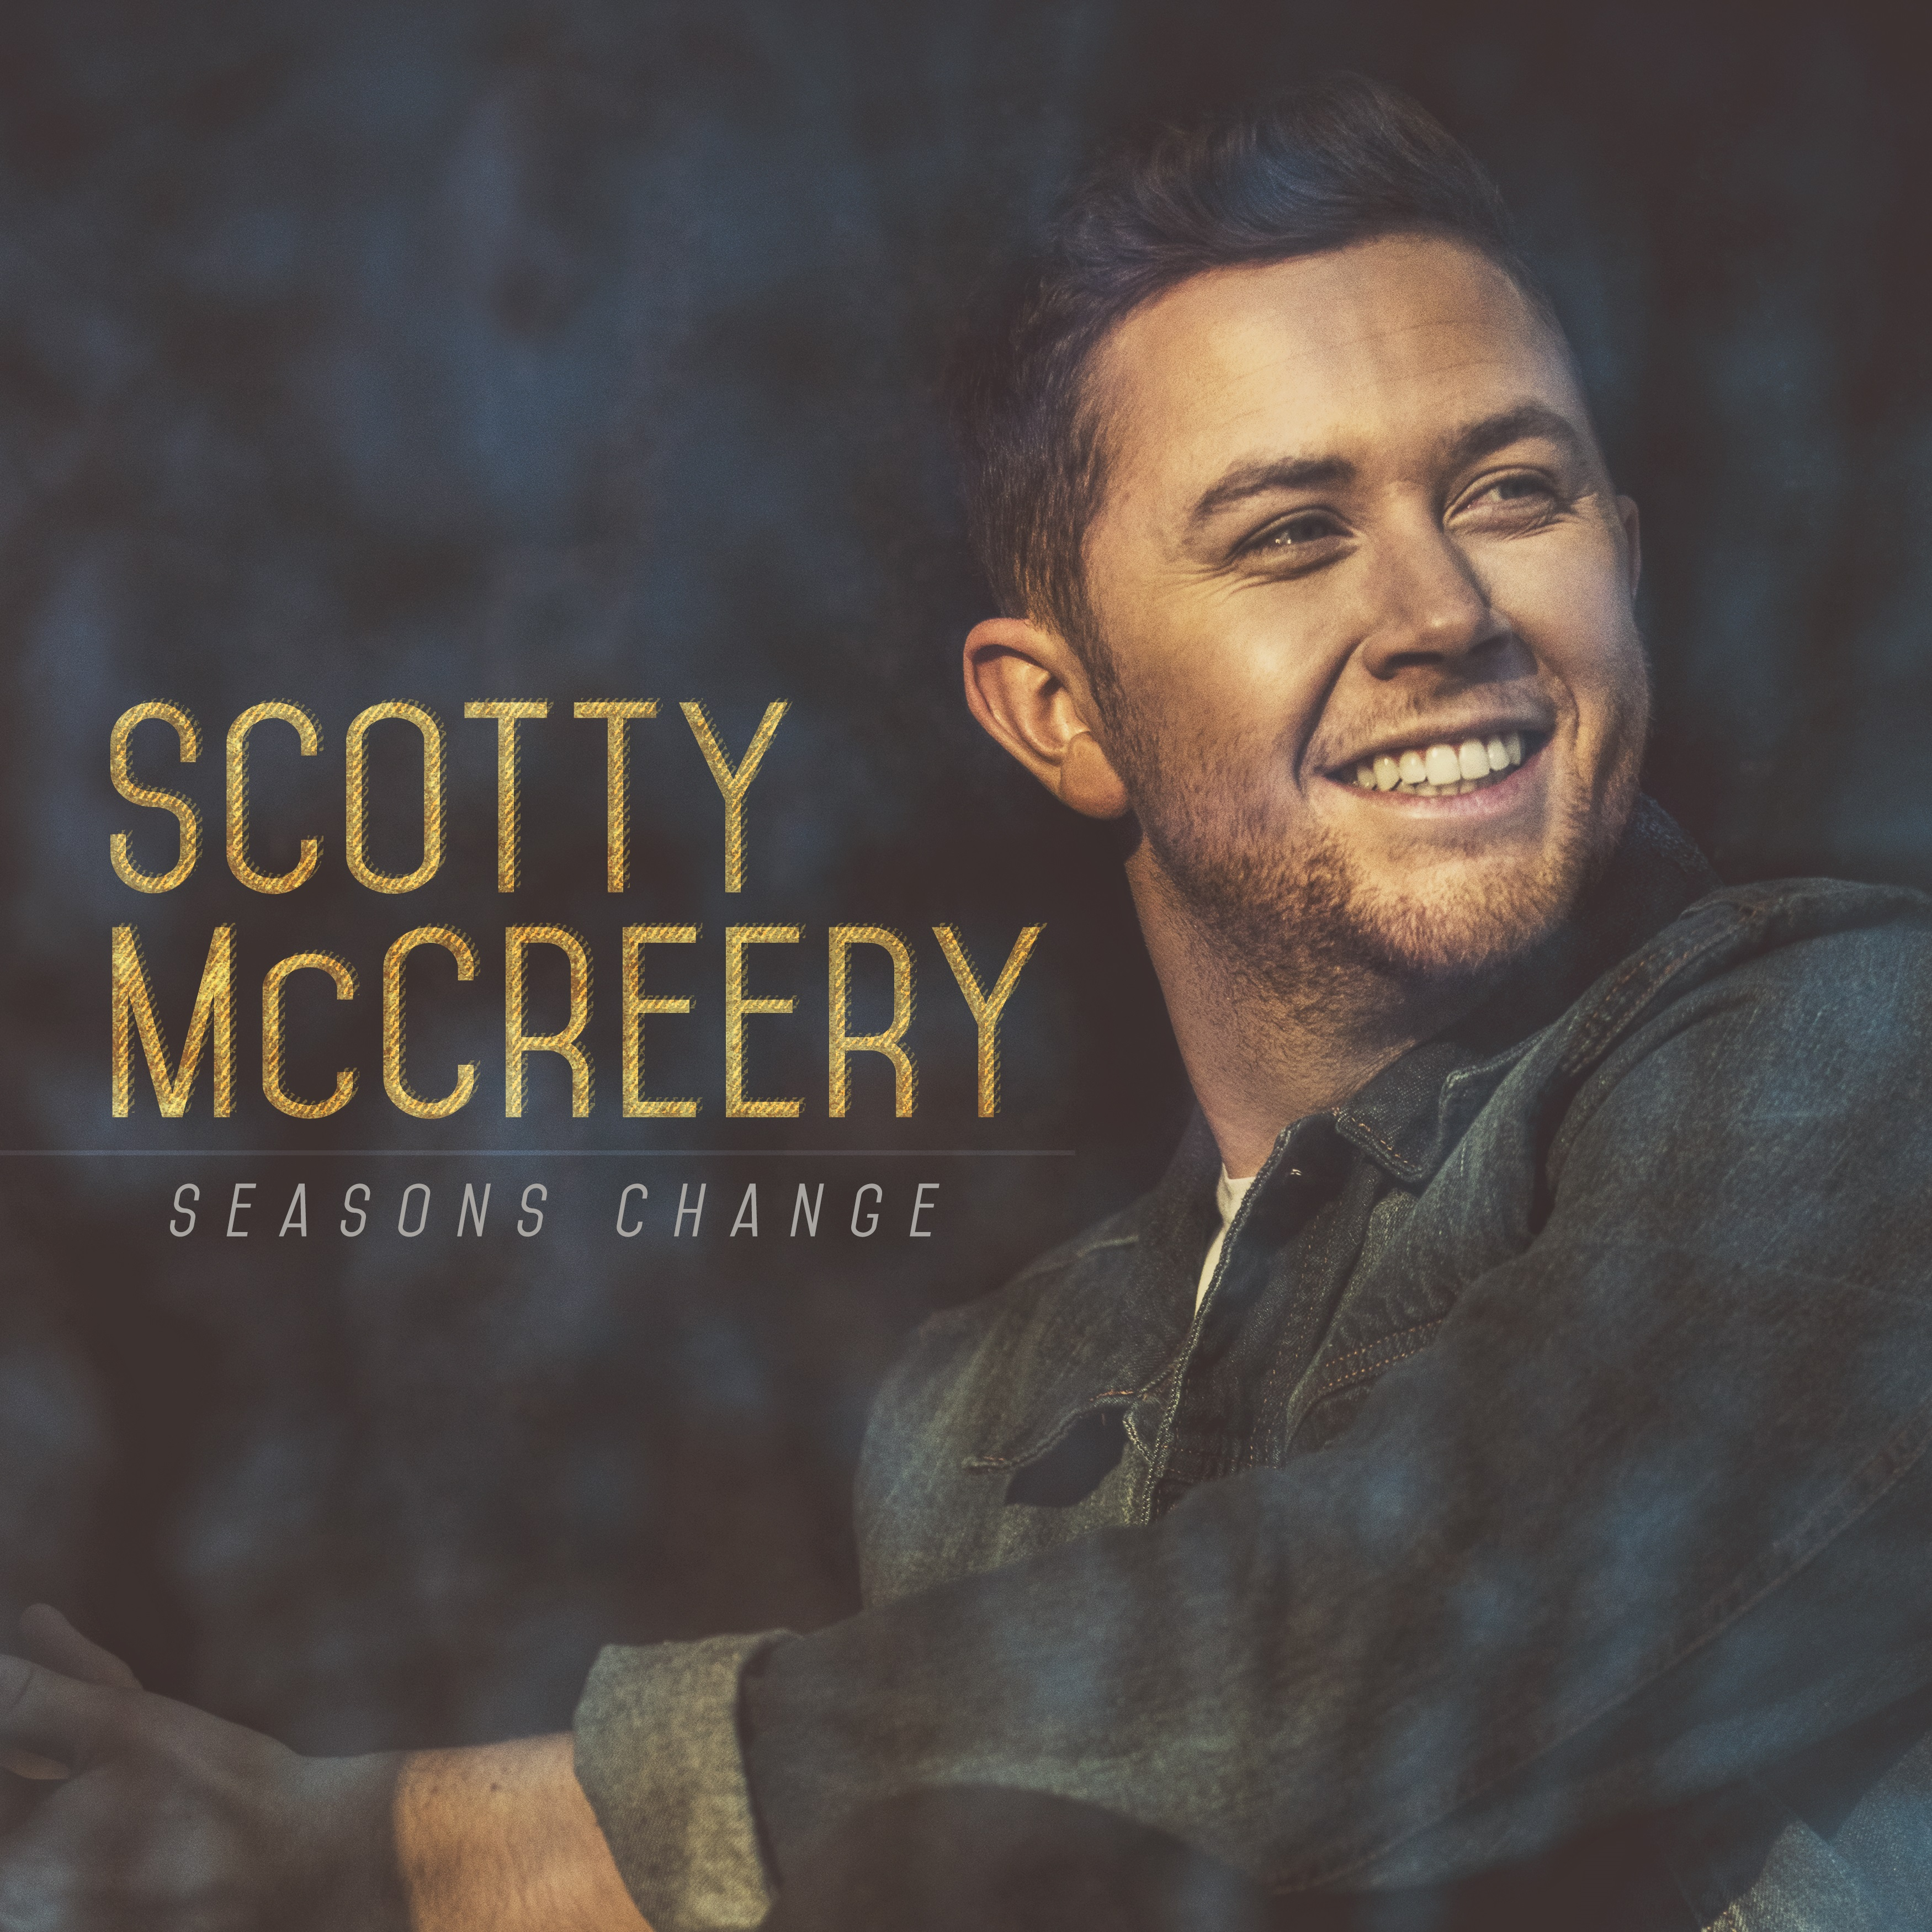 Scotty mccreery seasons change album review building our own one door closed and an even bigger one opened for scotty mccreery last year when he stood by his truth and his belief in his music and his single five more malvernweather Choice Image